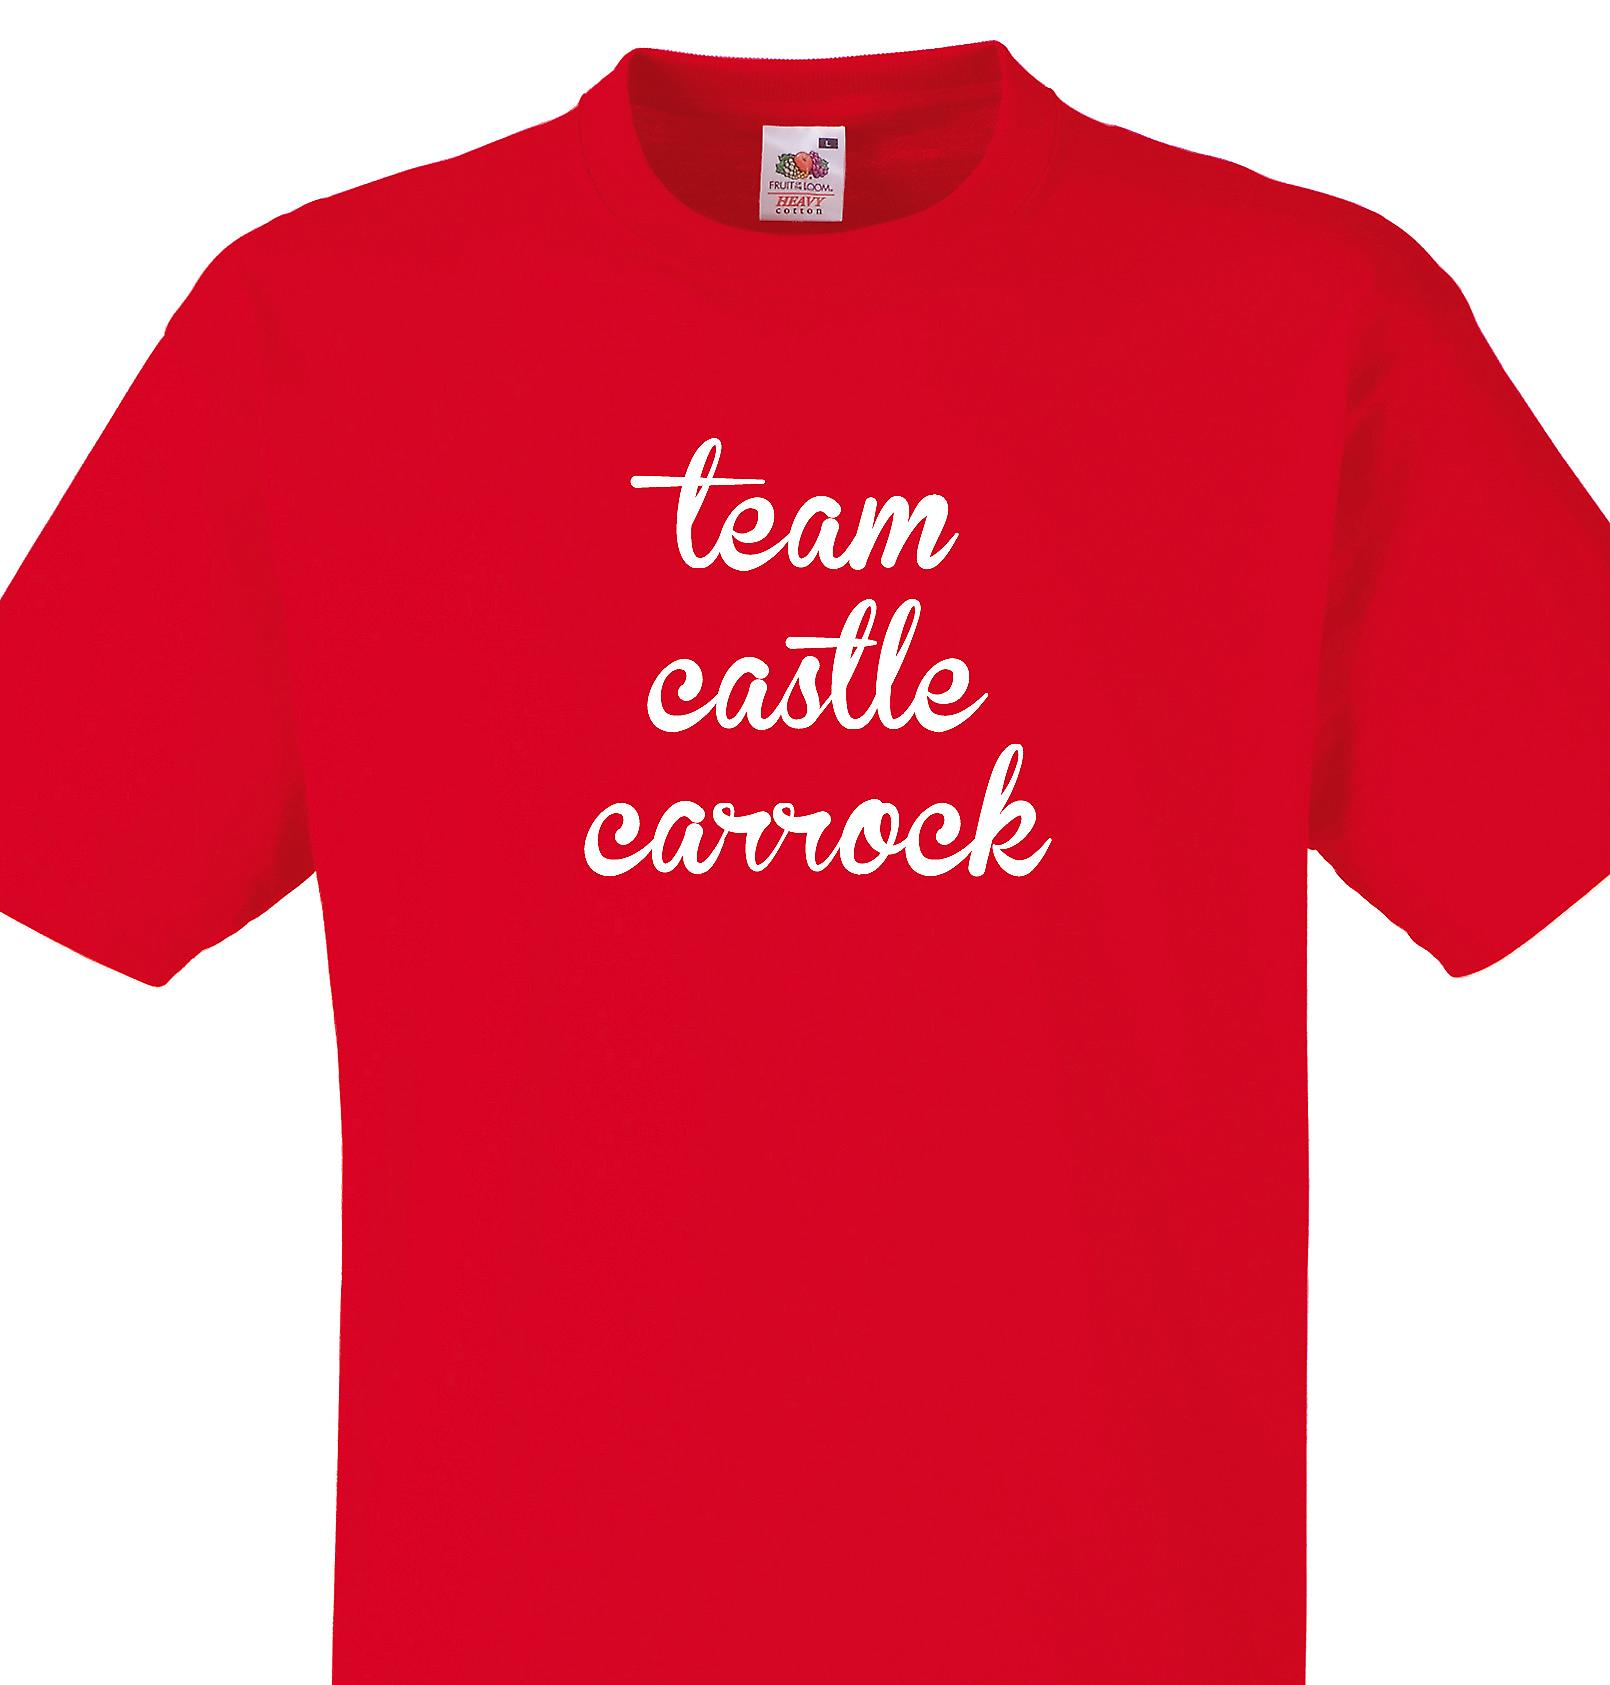 Team Castle carrock Red T shirt